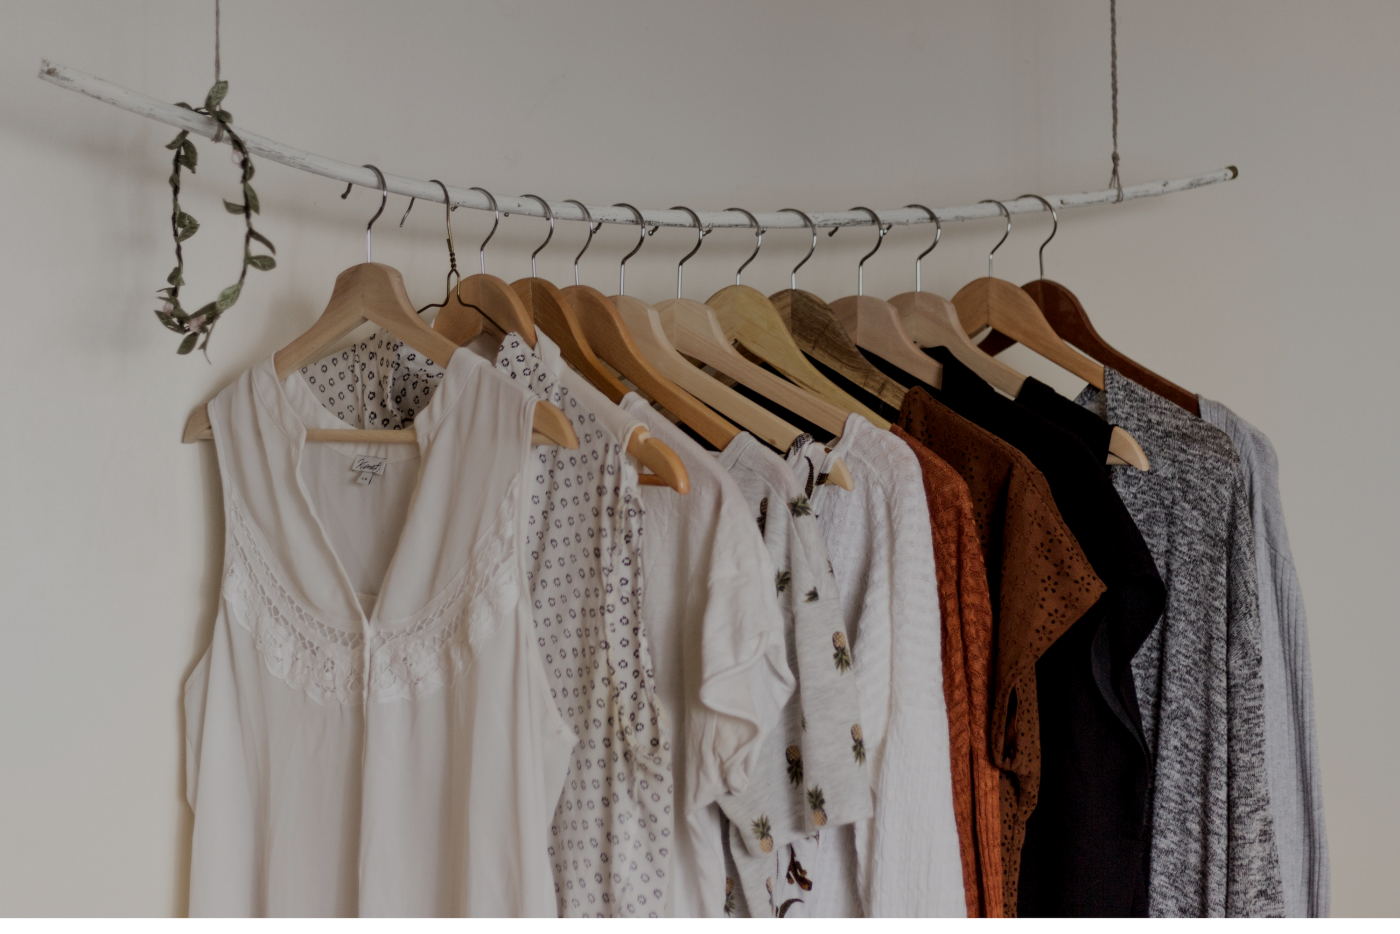 A clothes rail with women's clothes: What to wear to a 2-day event